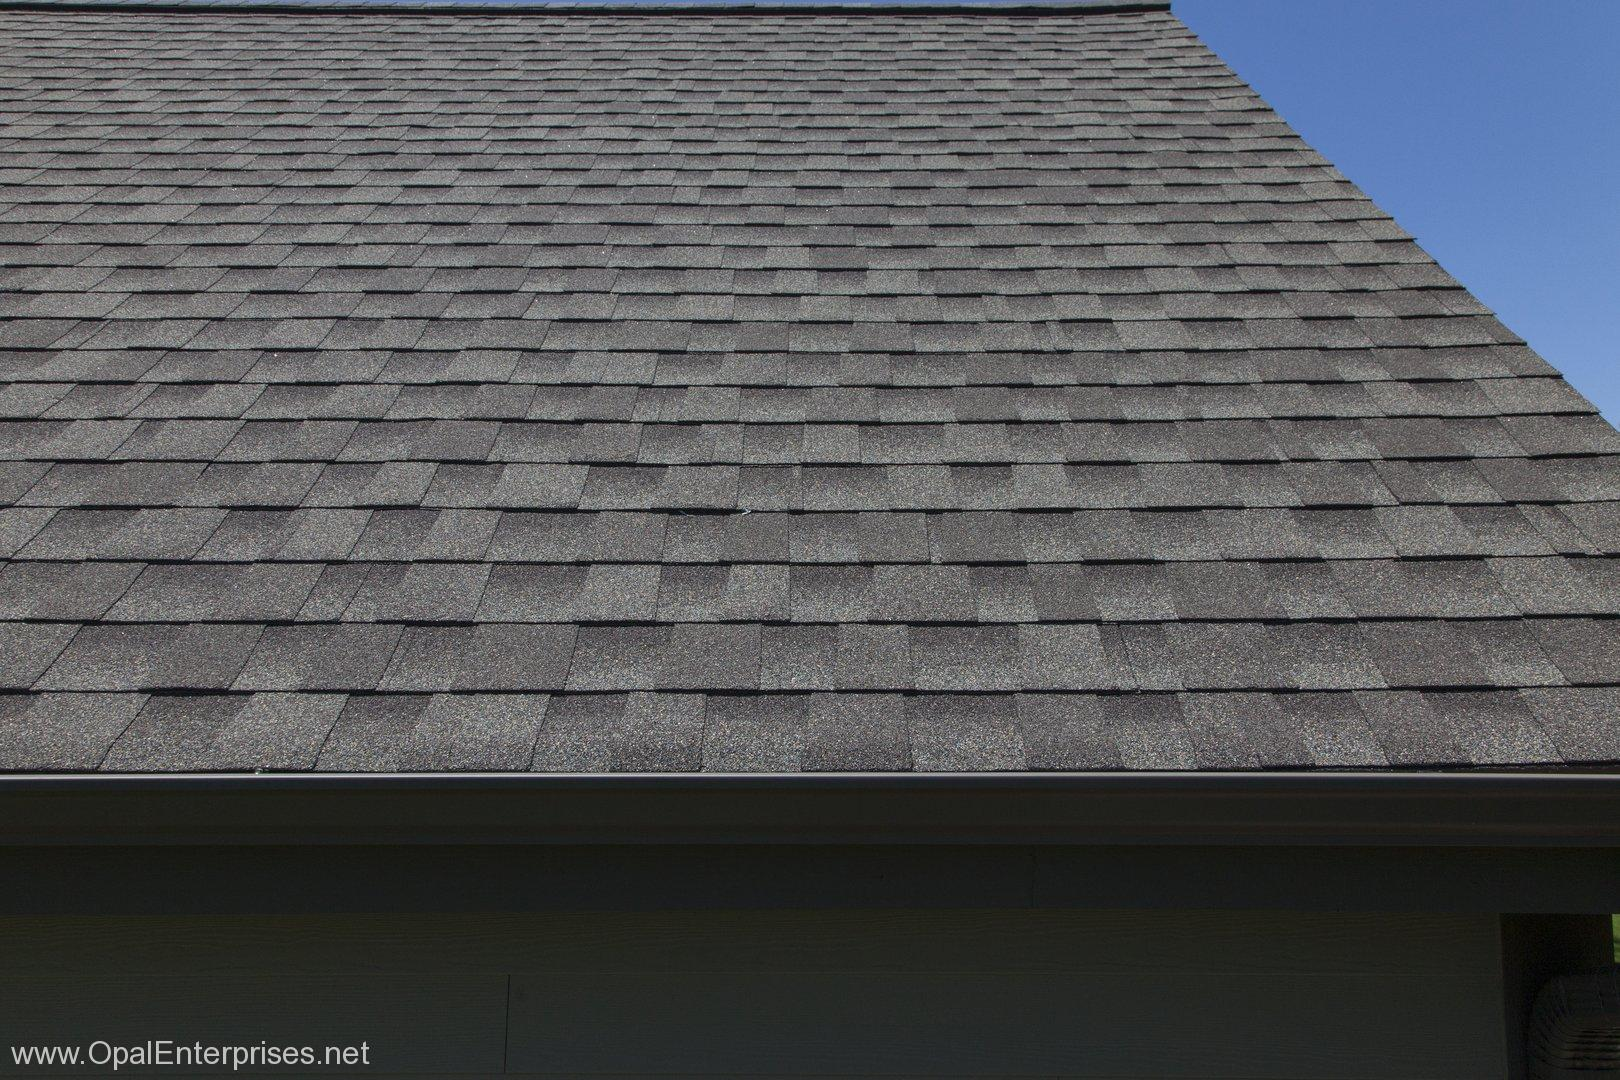 GAF roofing Timberline HD shingles in Weathered Wood